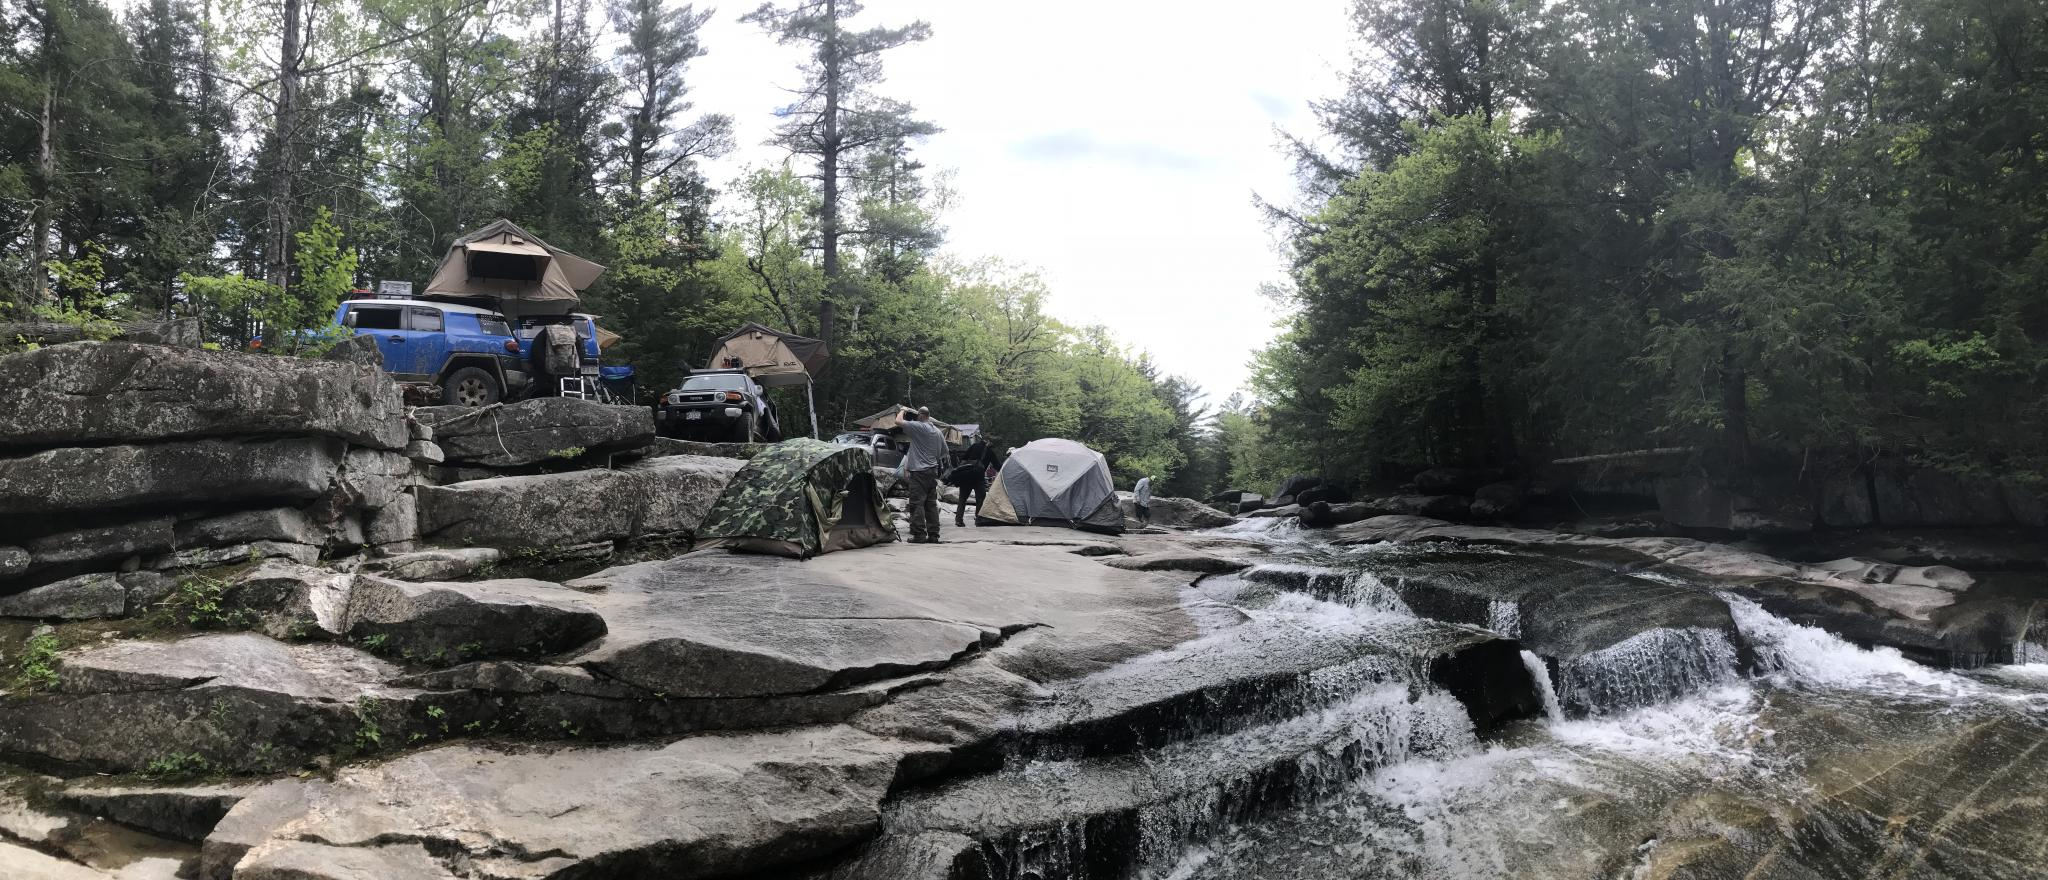 Let See Your Camping Pics With The Fj Page 195